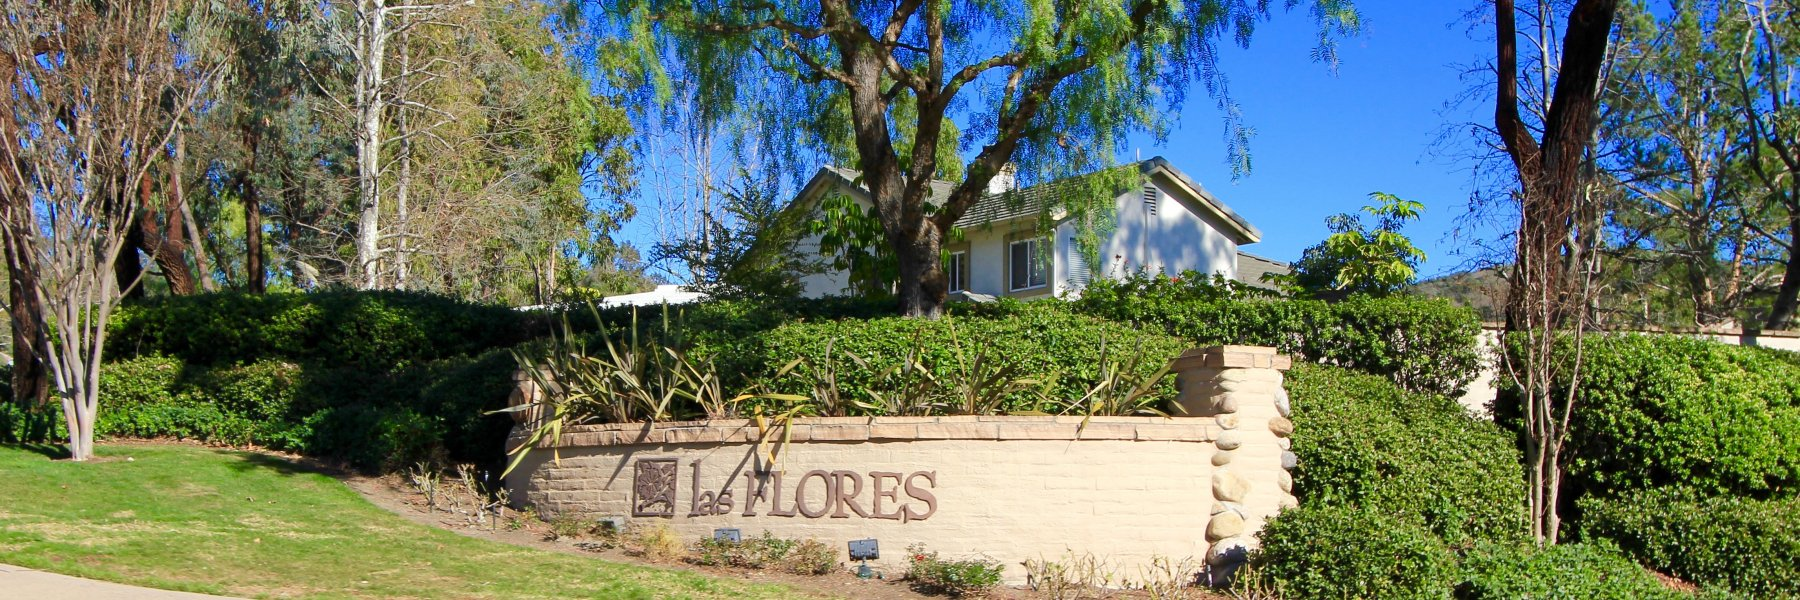 Las Flores is a community of homes in Rancho Santa Margarita